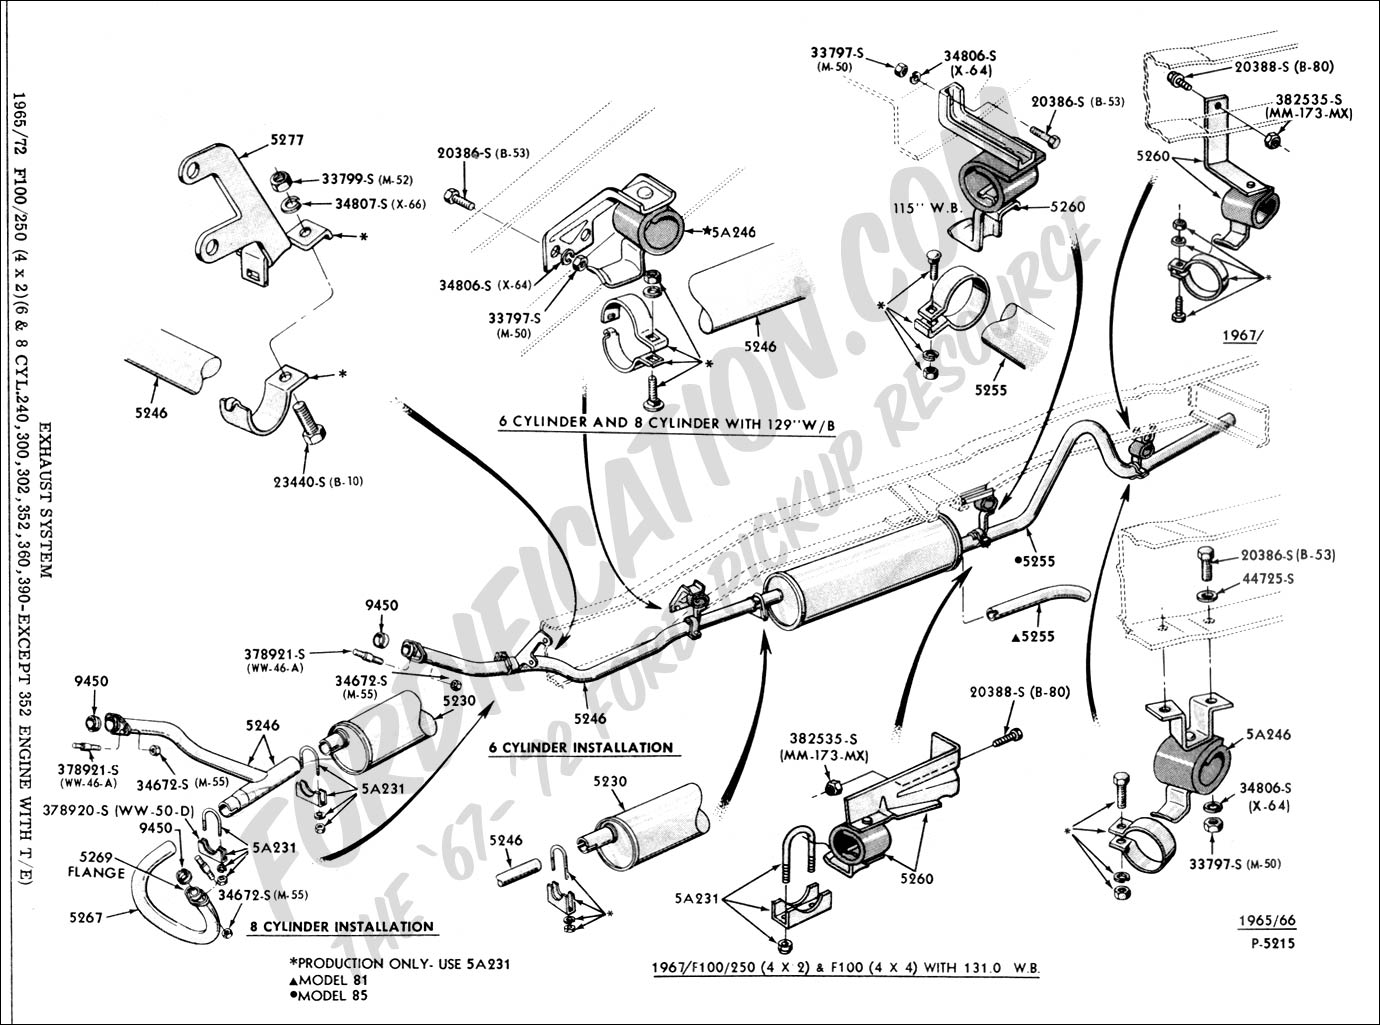 1977 Ford 5000 Wiring Diagram on 4000 ford tractor injector pump diagram